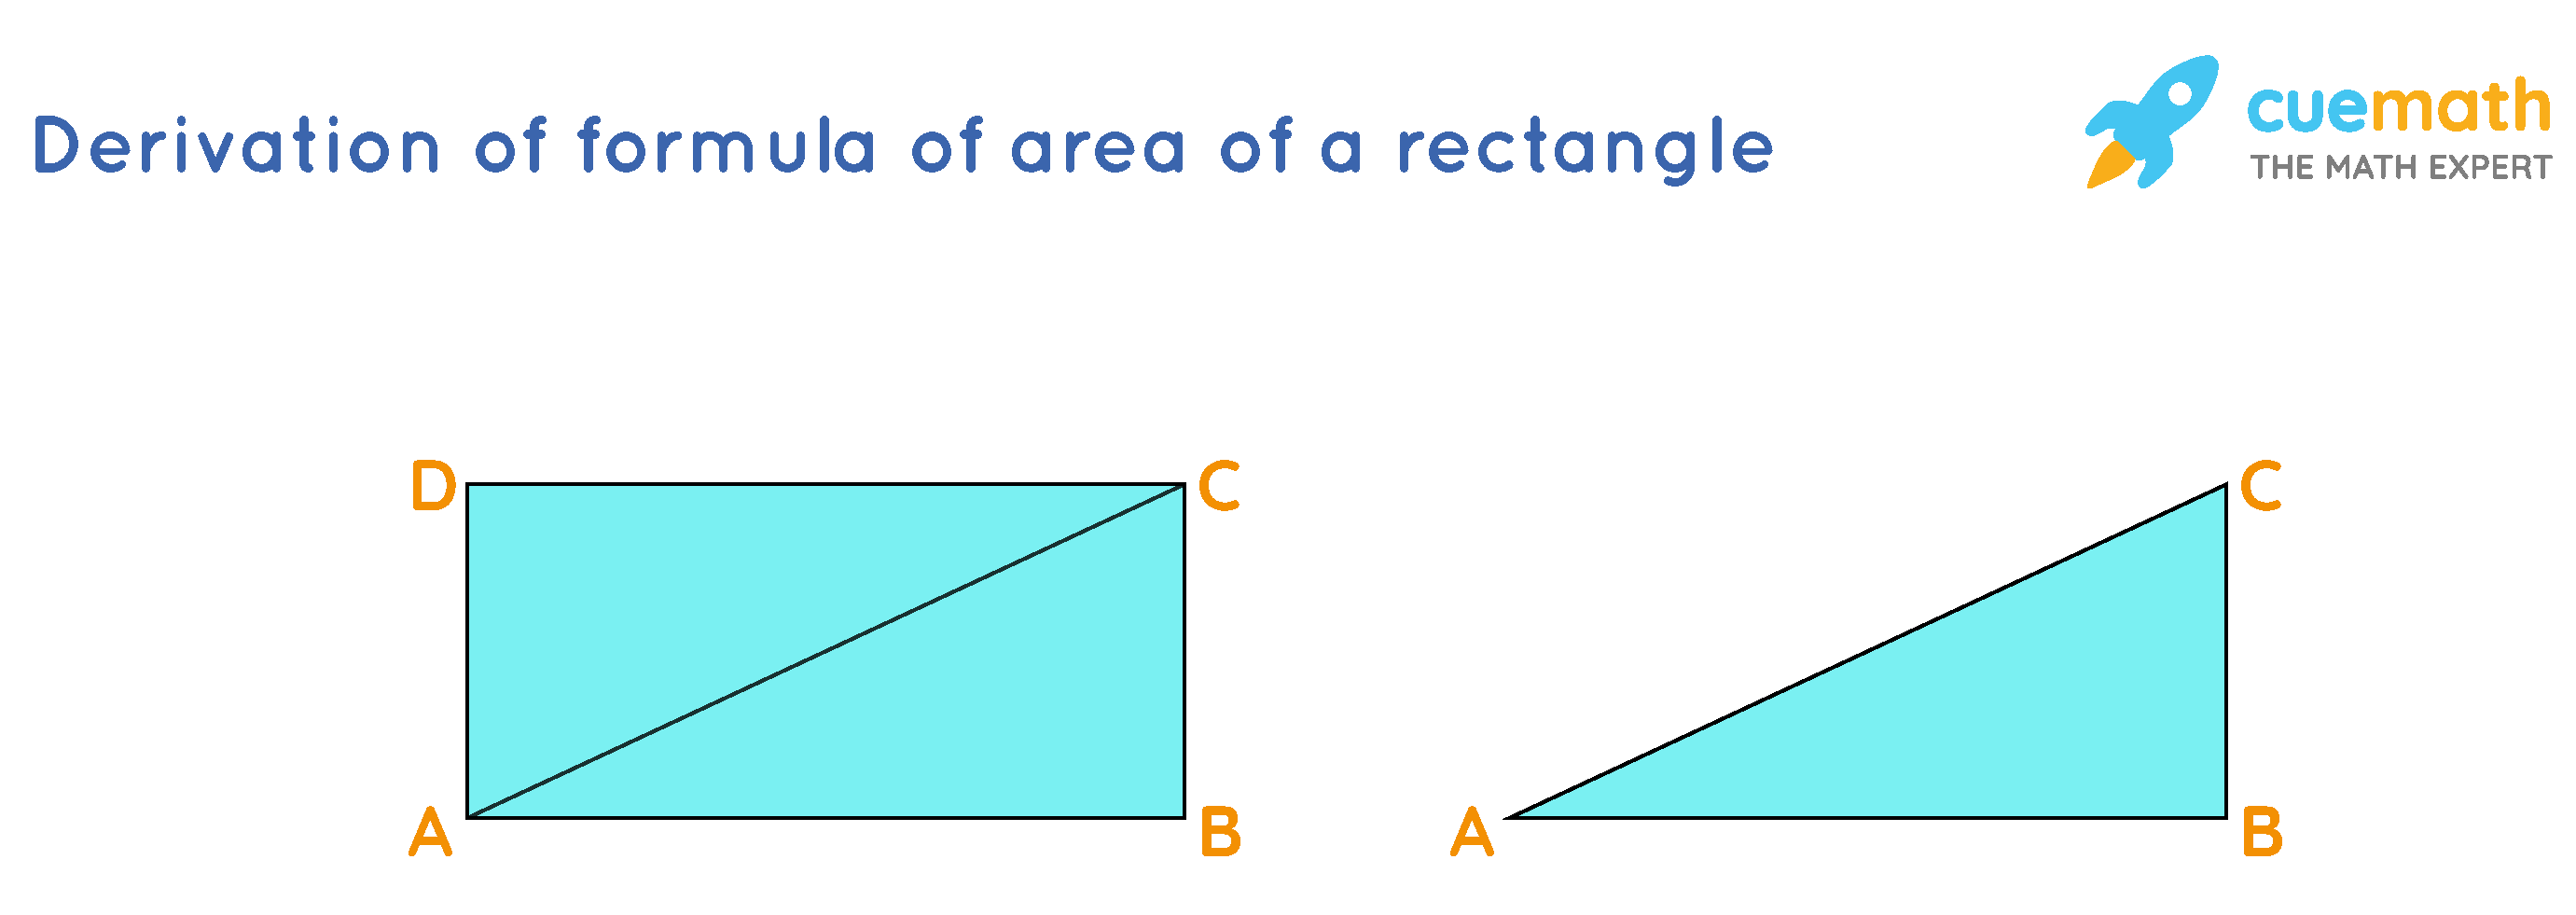 Derivation of formula of area of a rectangle